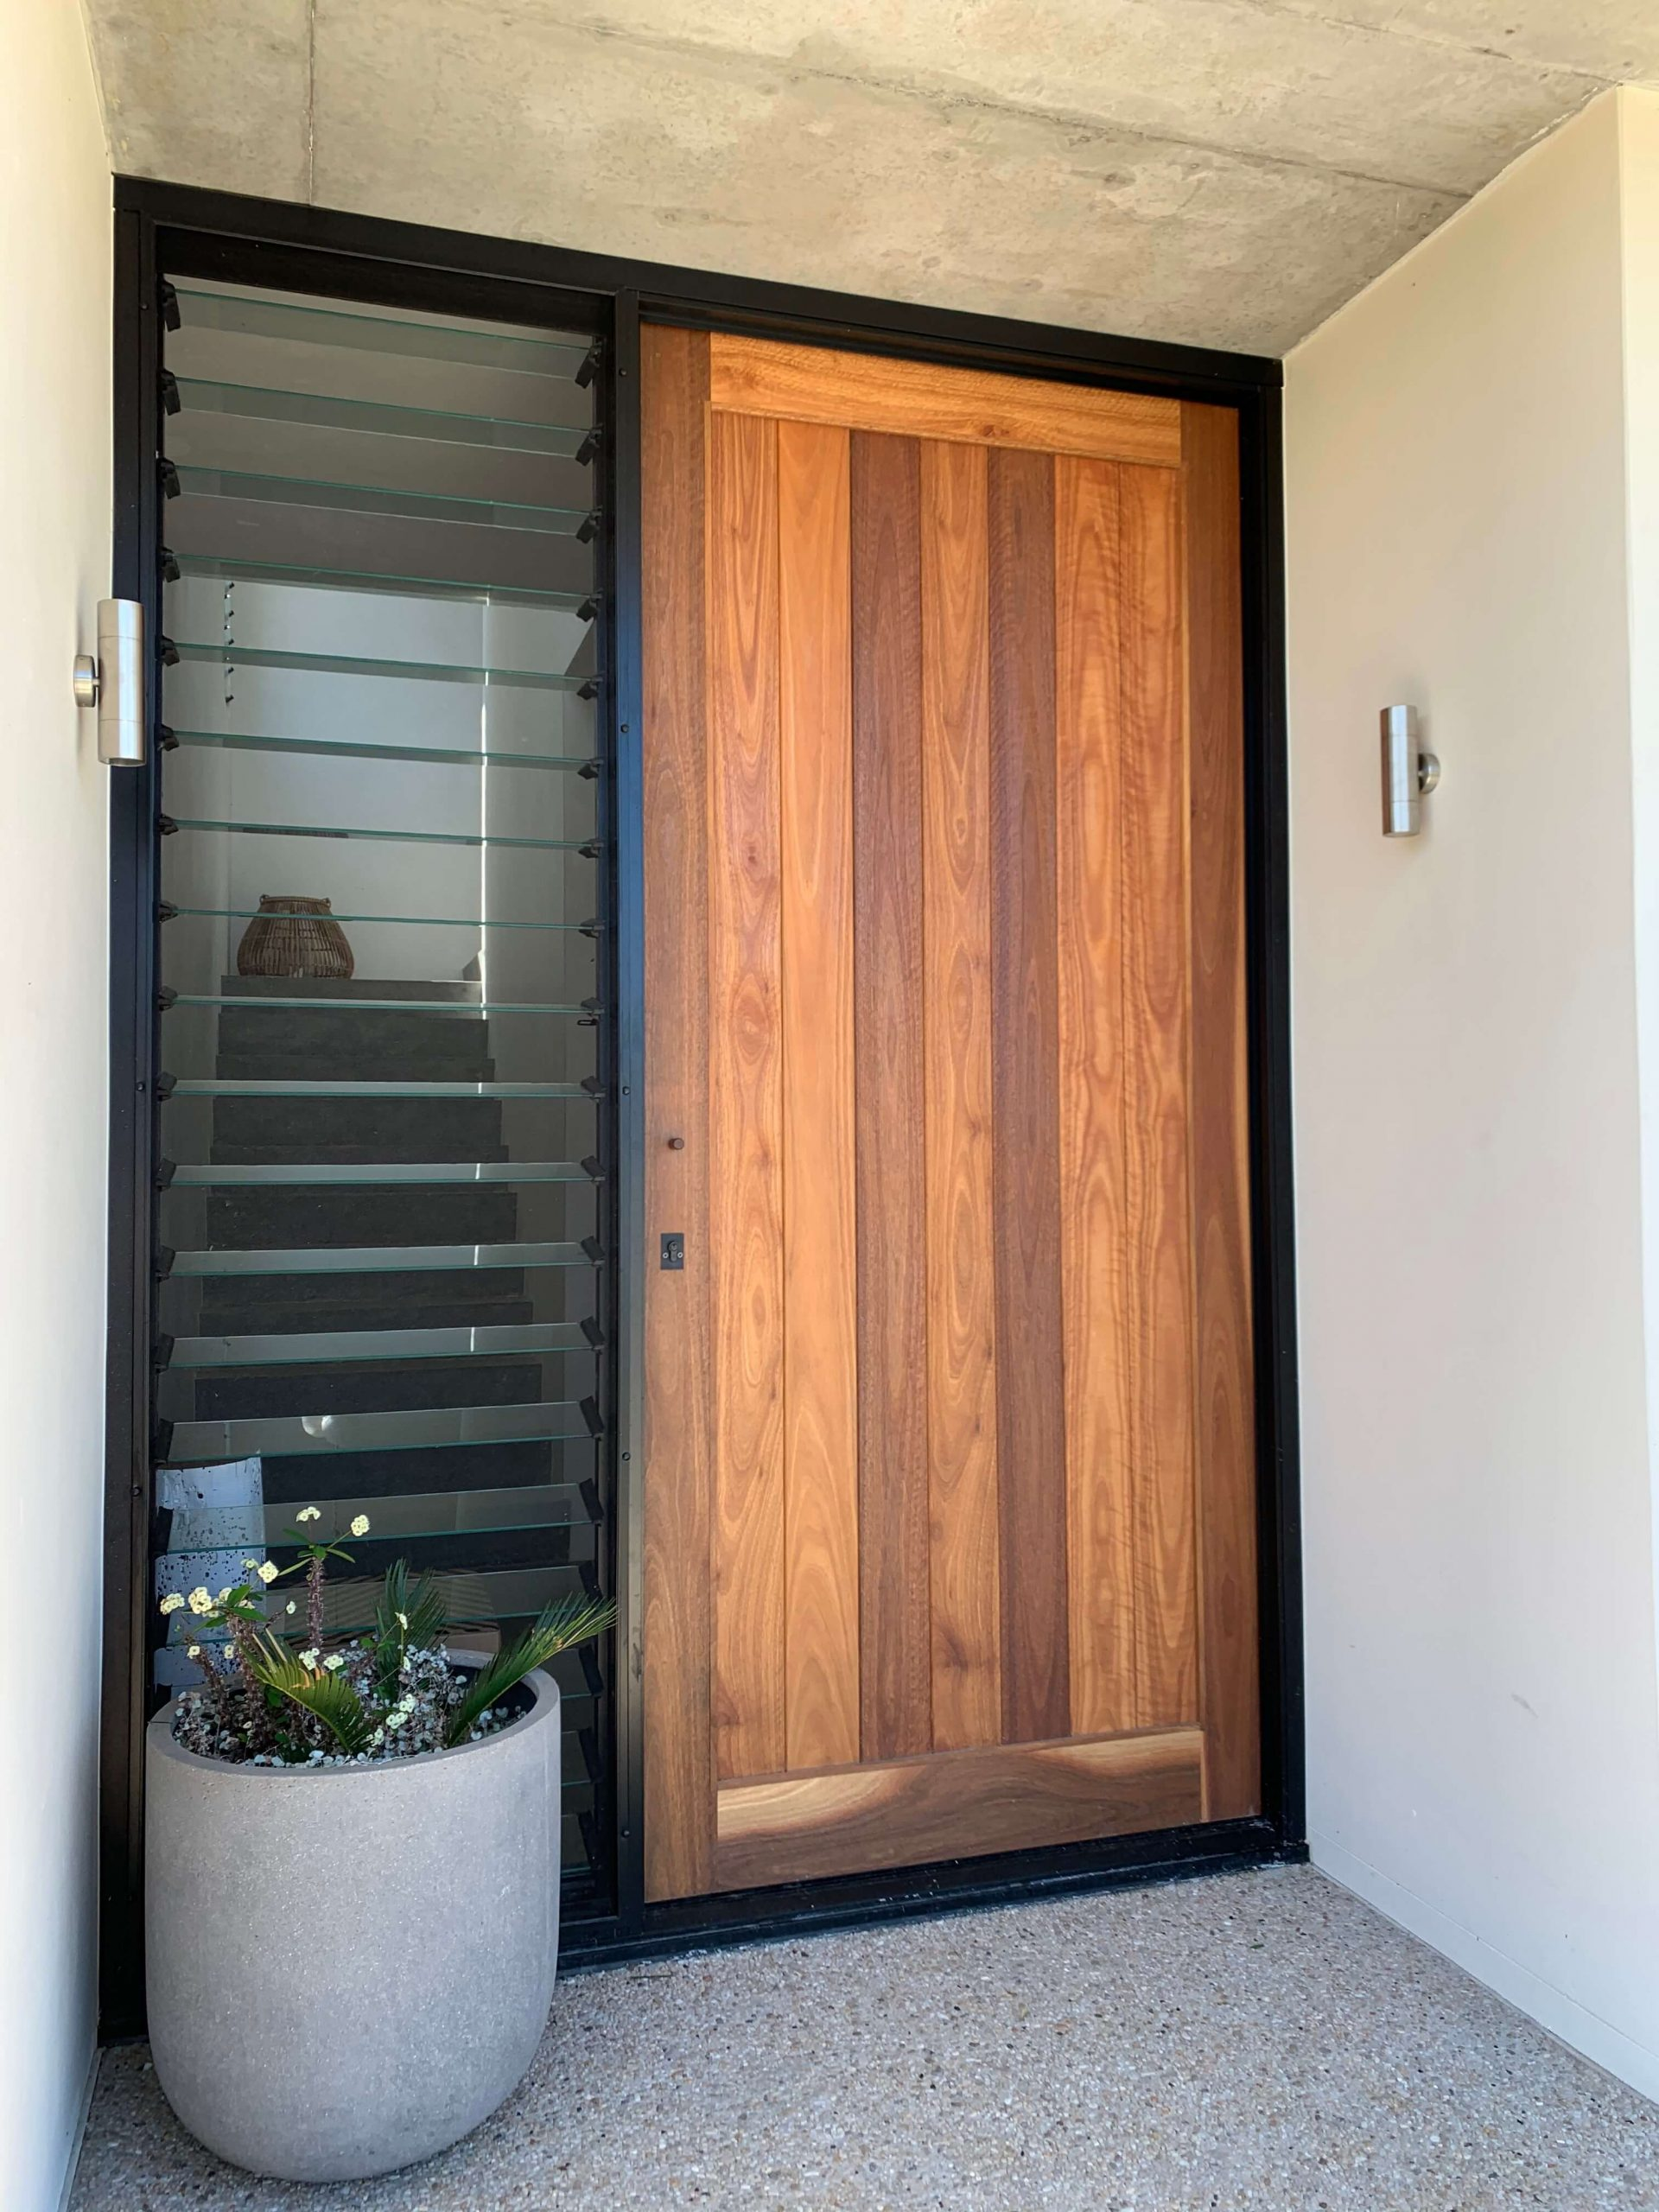 Architectural home with a large Spotted Gum vertical VJ pivot entry door unit with a clear glass sidelight